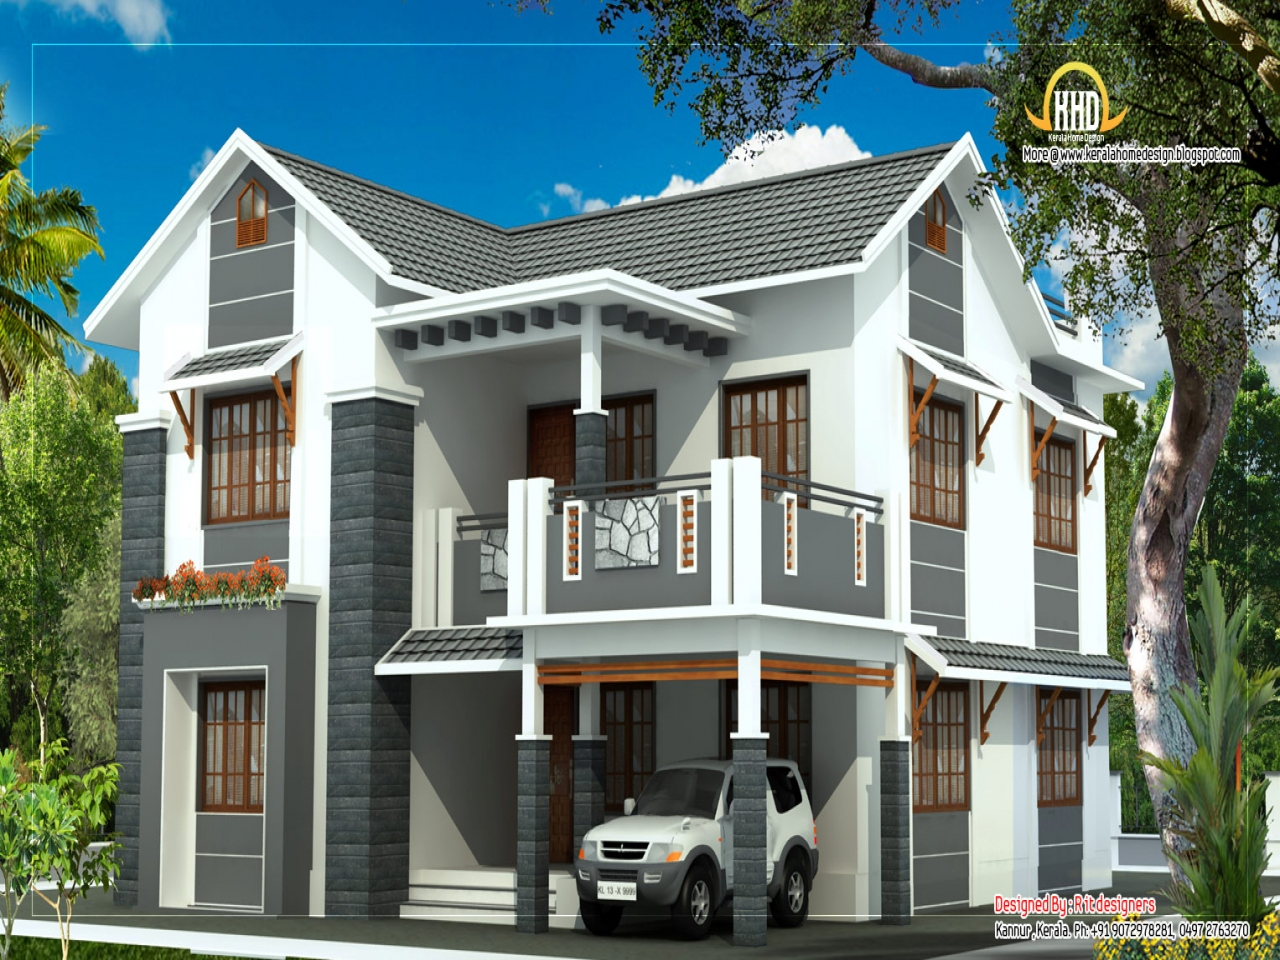 Simple Two-Storey House Design Modern 2 Story House Floor ...